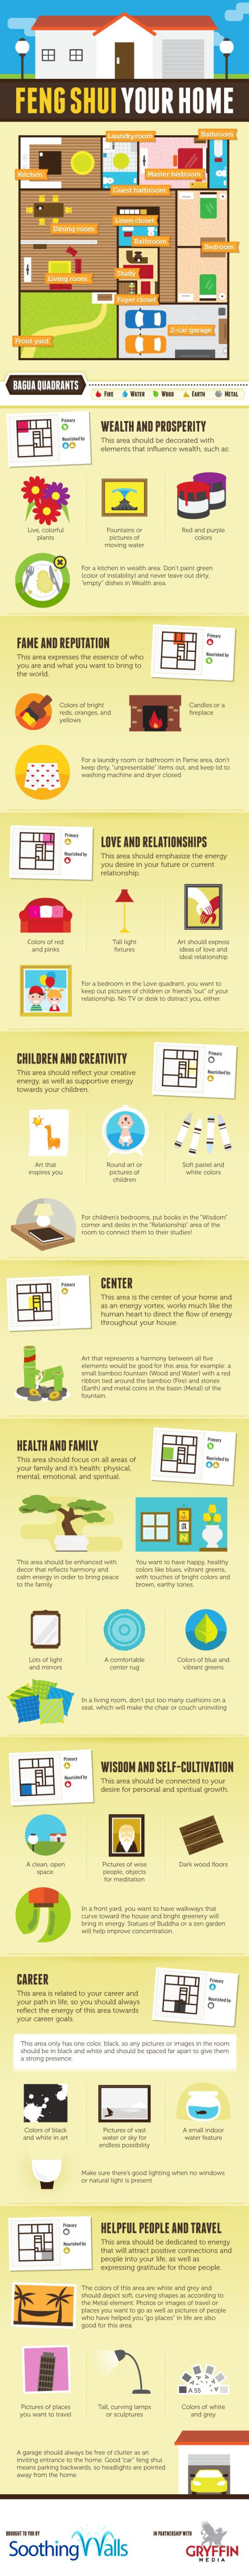 Feng Shui Your Home #FengShui #Home #Infographic